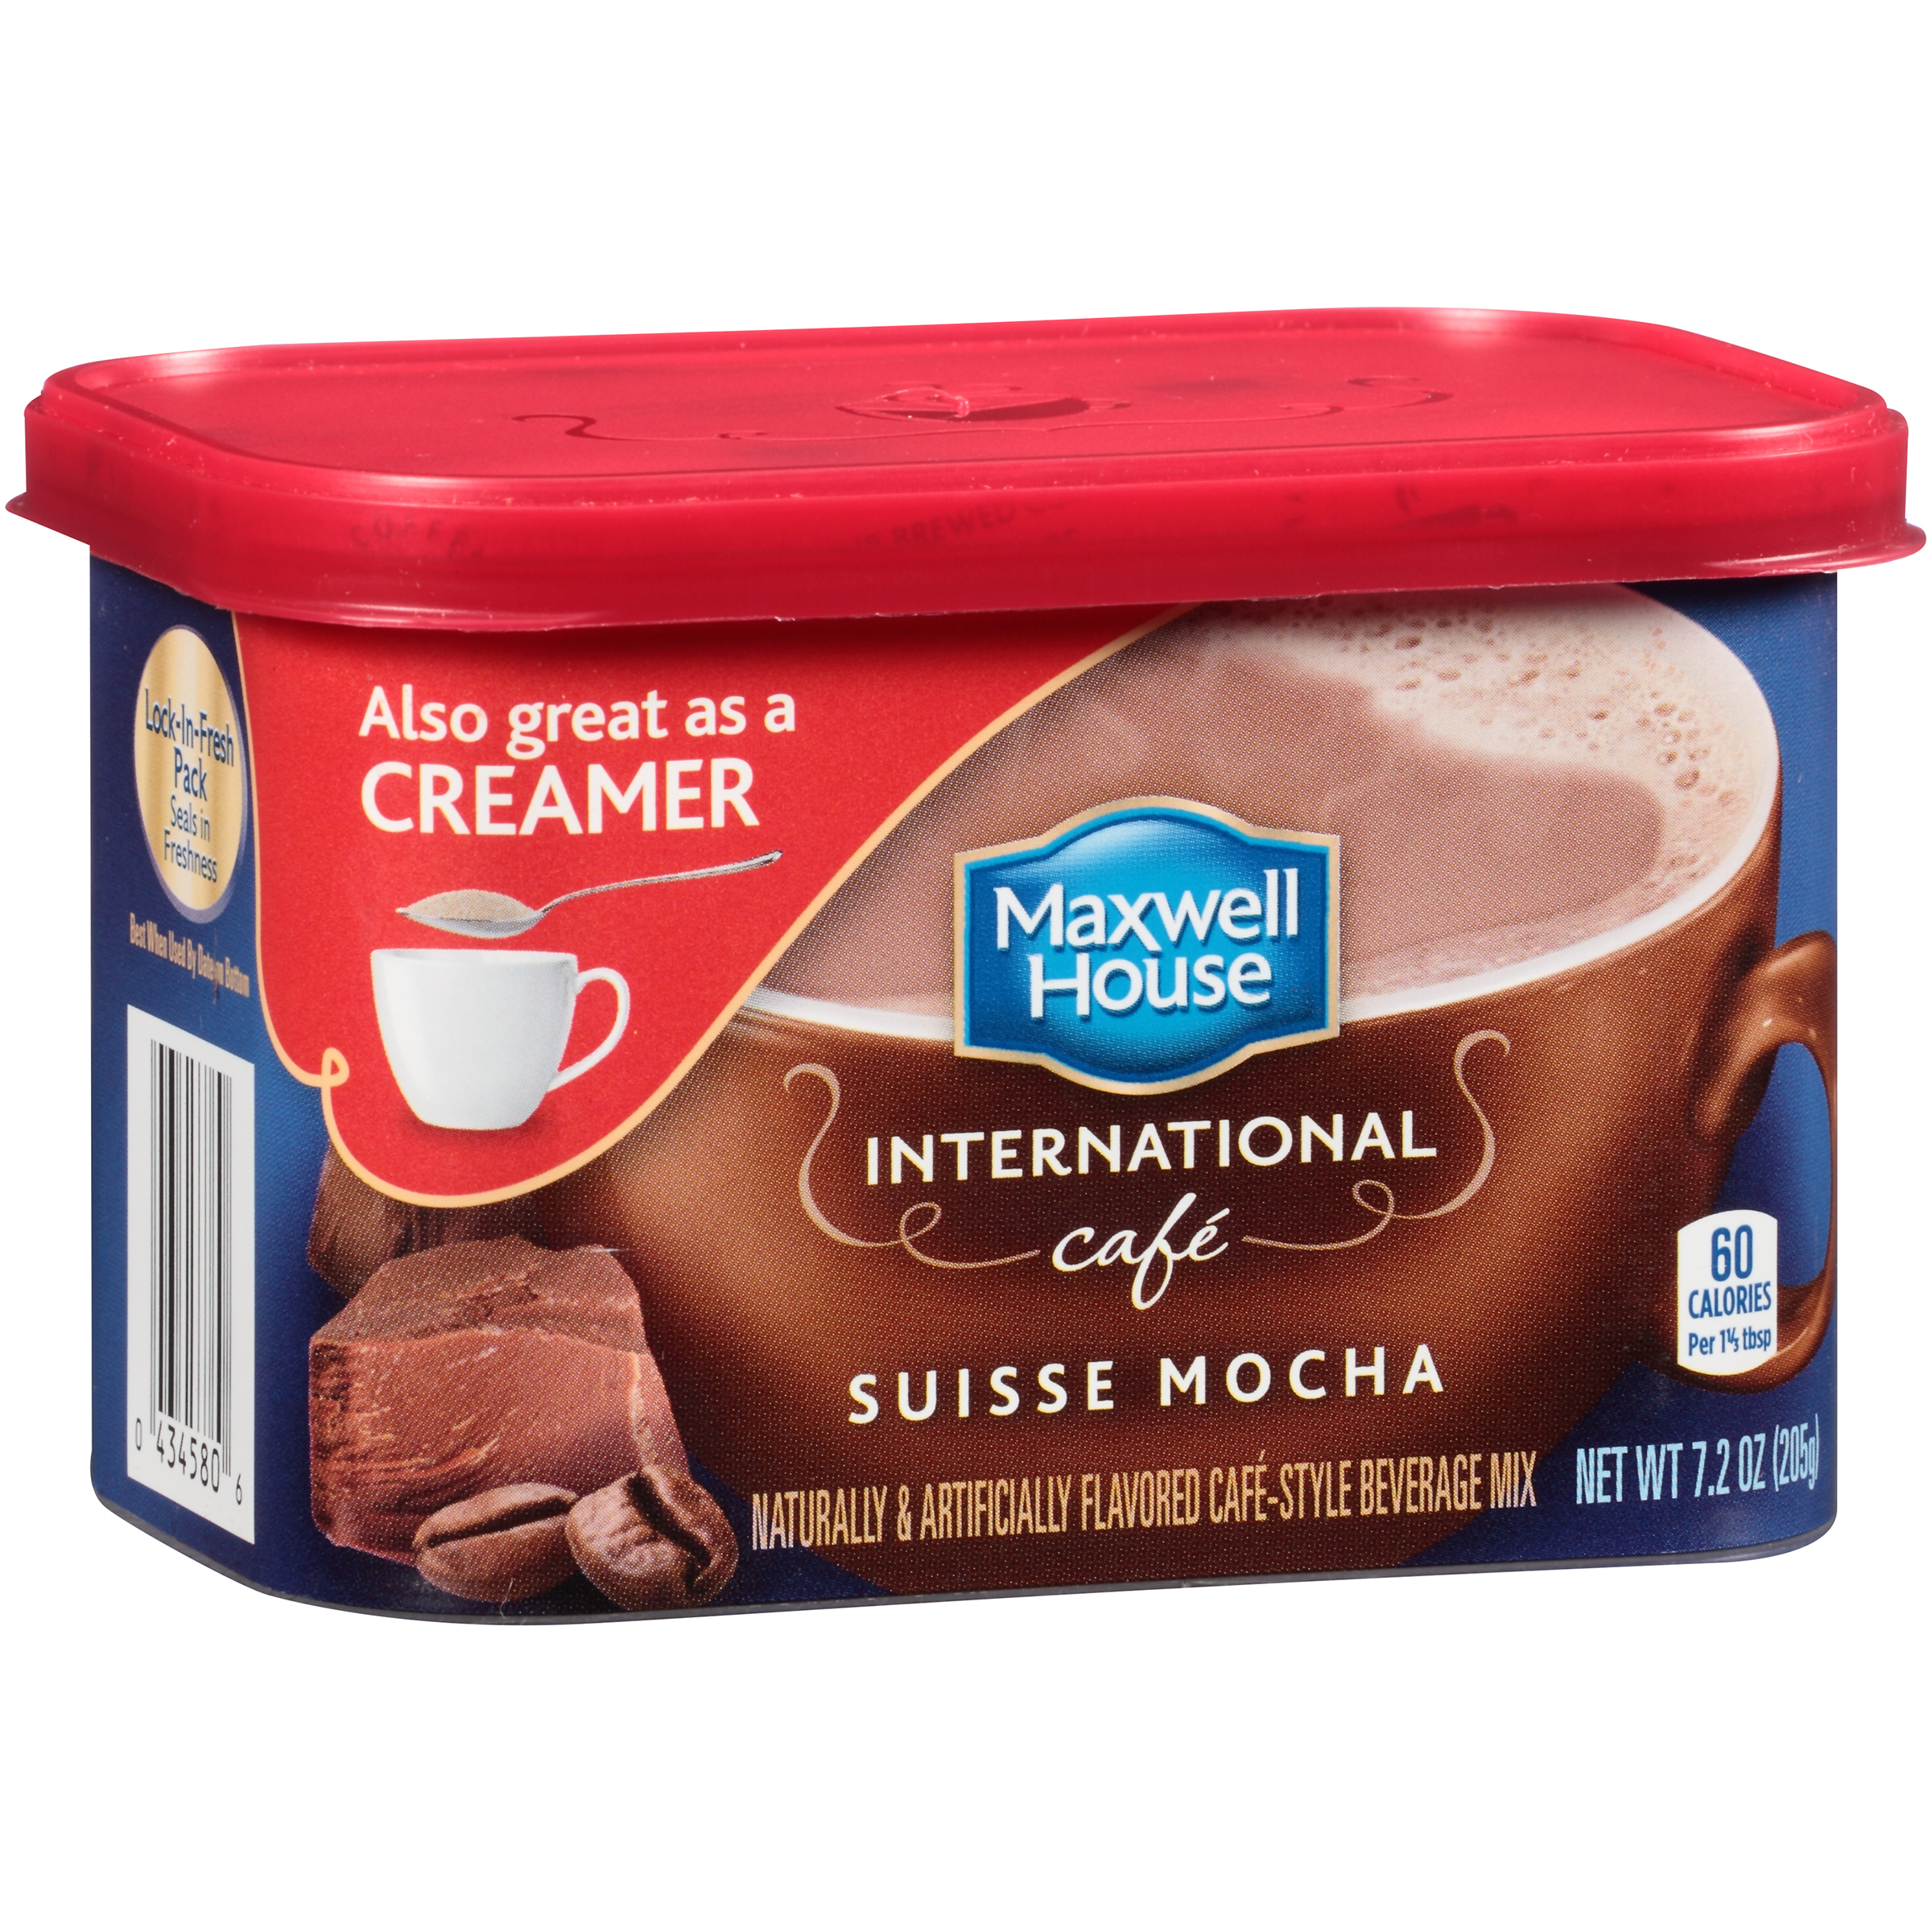 Maxwell House International Cafe Suisse Mocha Cafe-Style Beverage Mix 7.2 oz. Tub